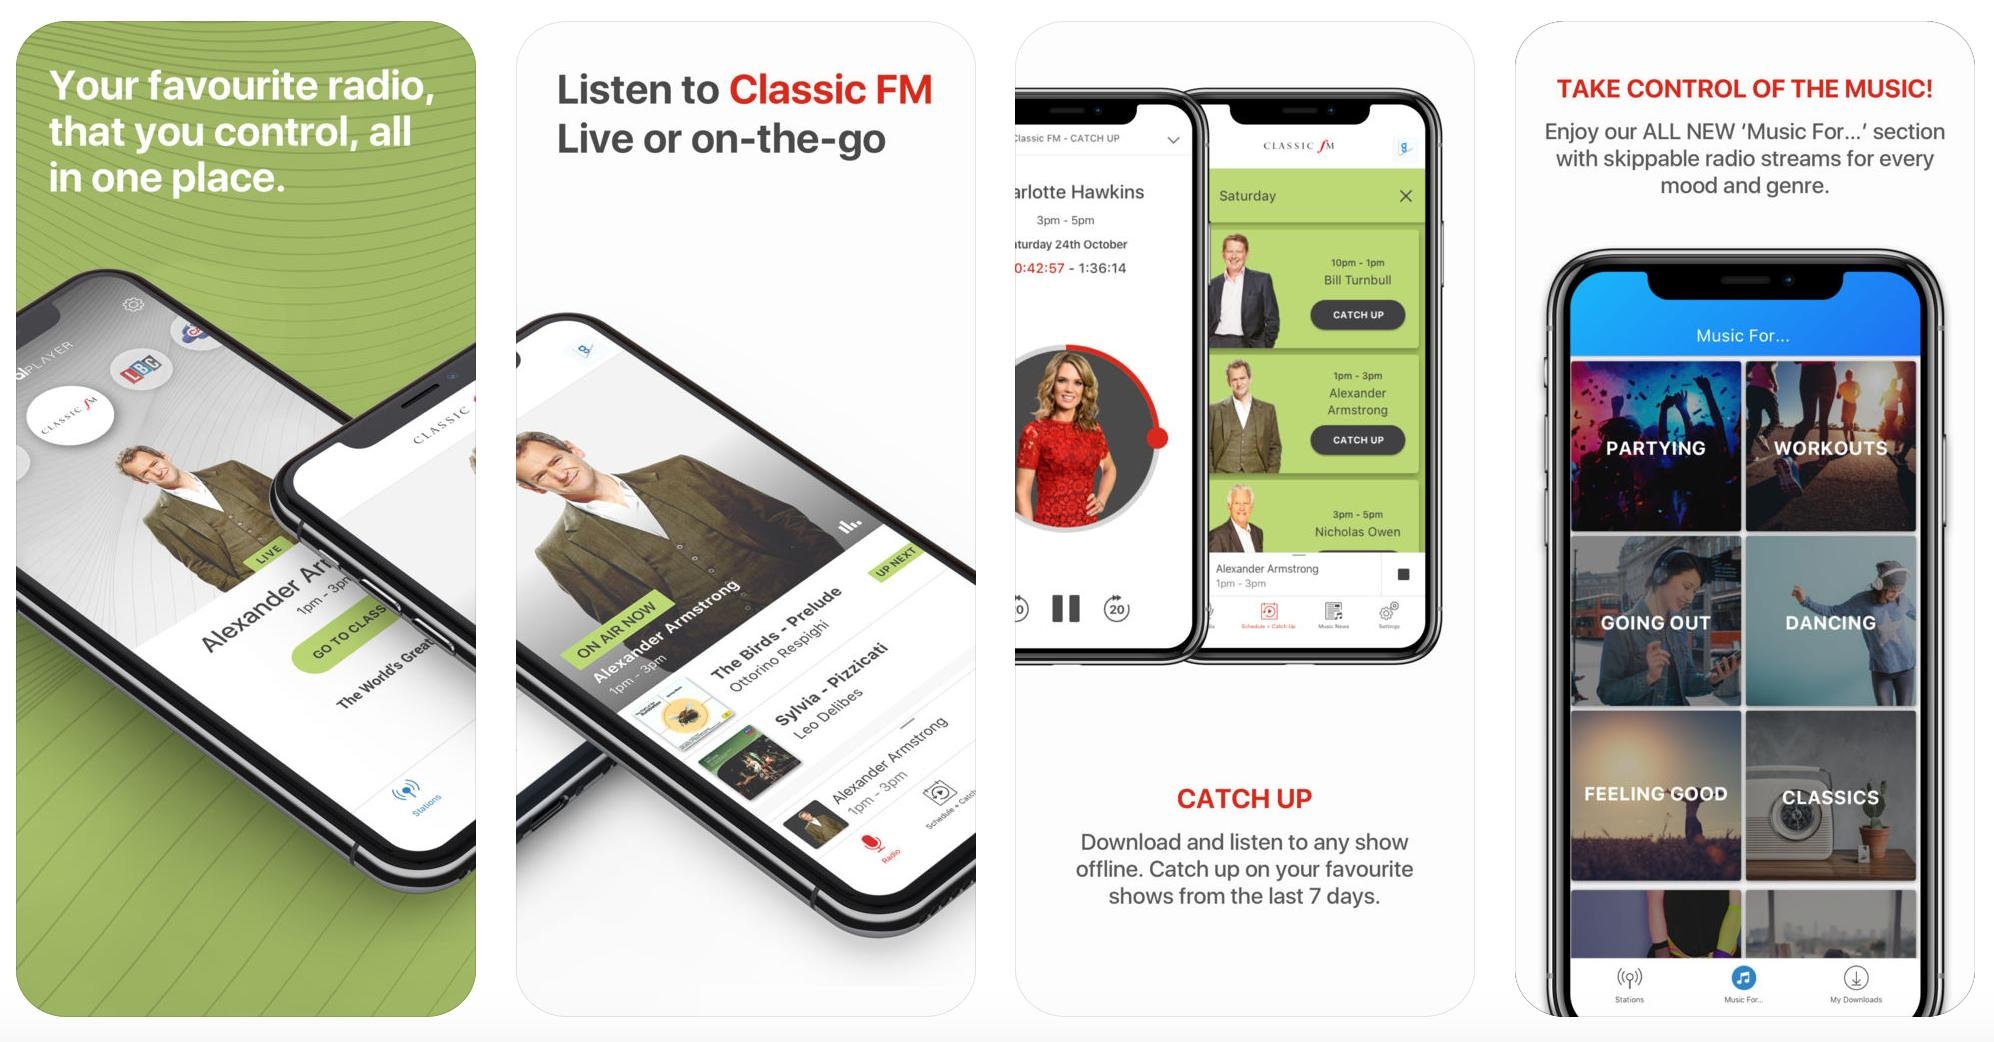 Get the Classic FM app, featuring stunning HD audio - Classic FM